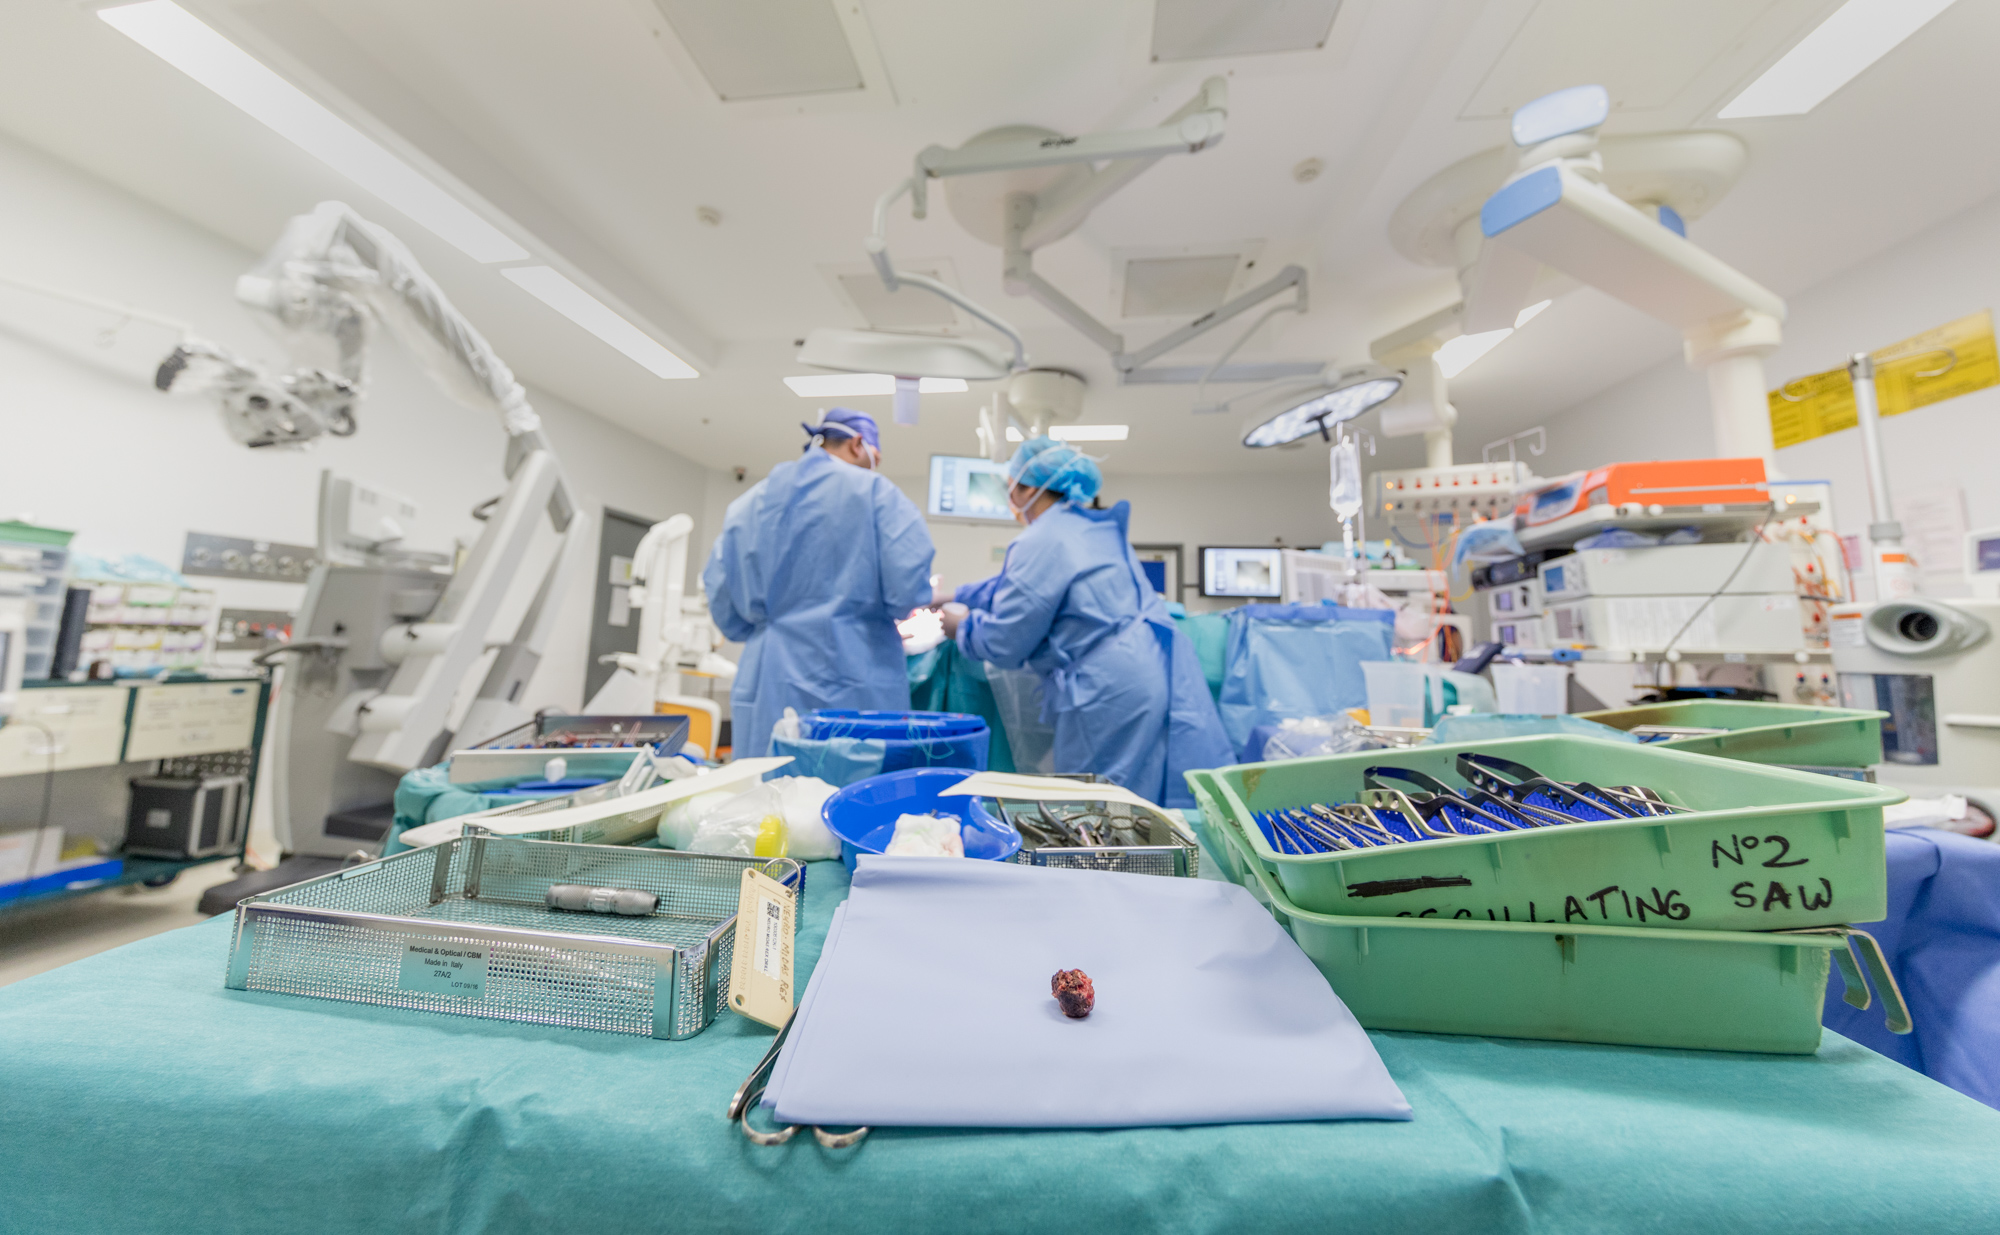 The tumour behind the patients eye took Dr Charlie Teo and his team 3 hours to remove. It was once the size of a golf ball but now drained of its source of blood, it's only half the size.